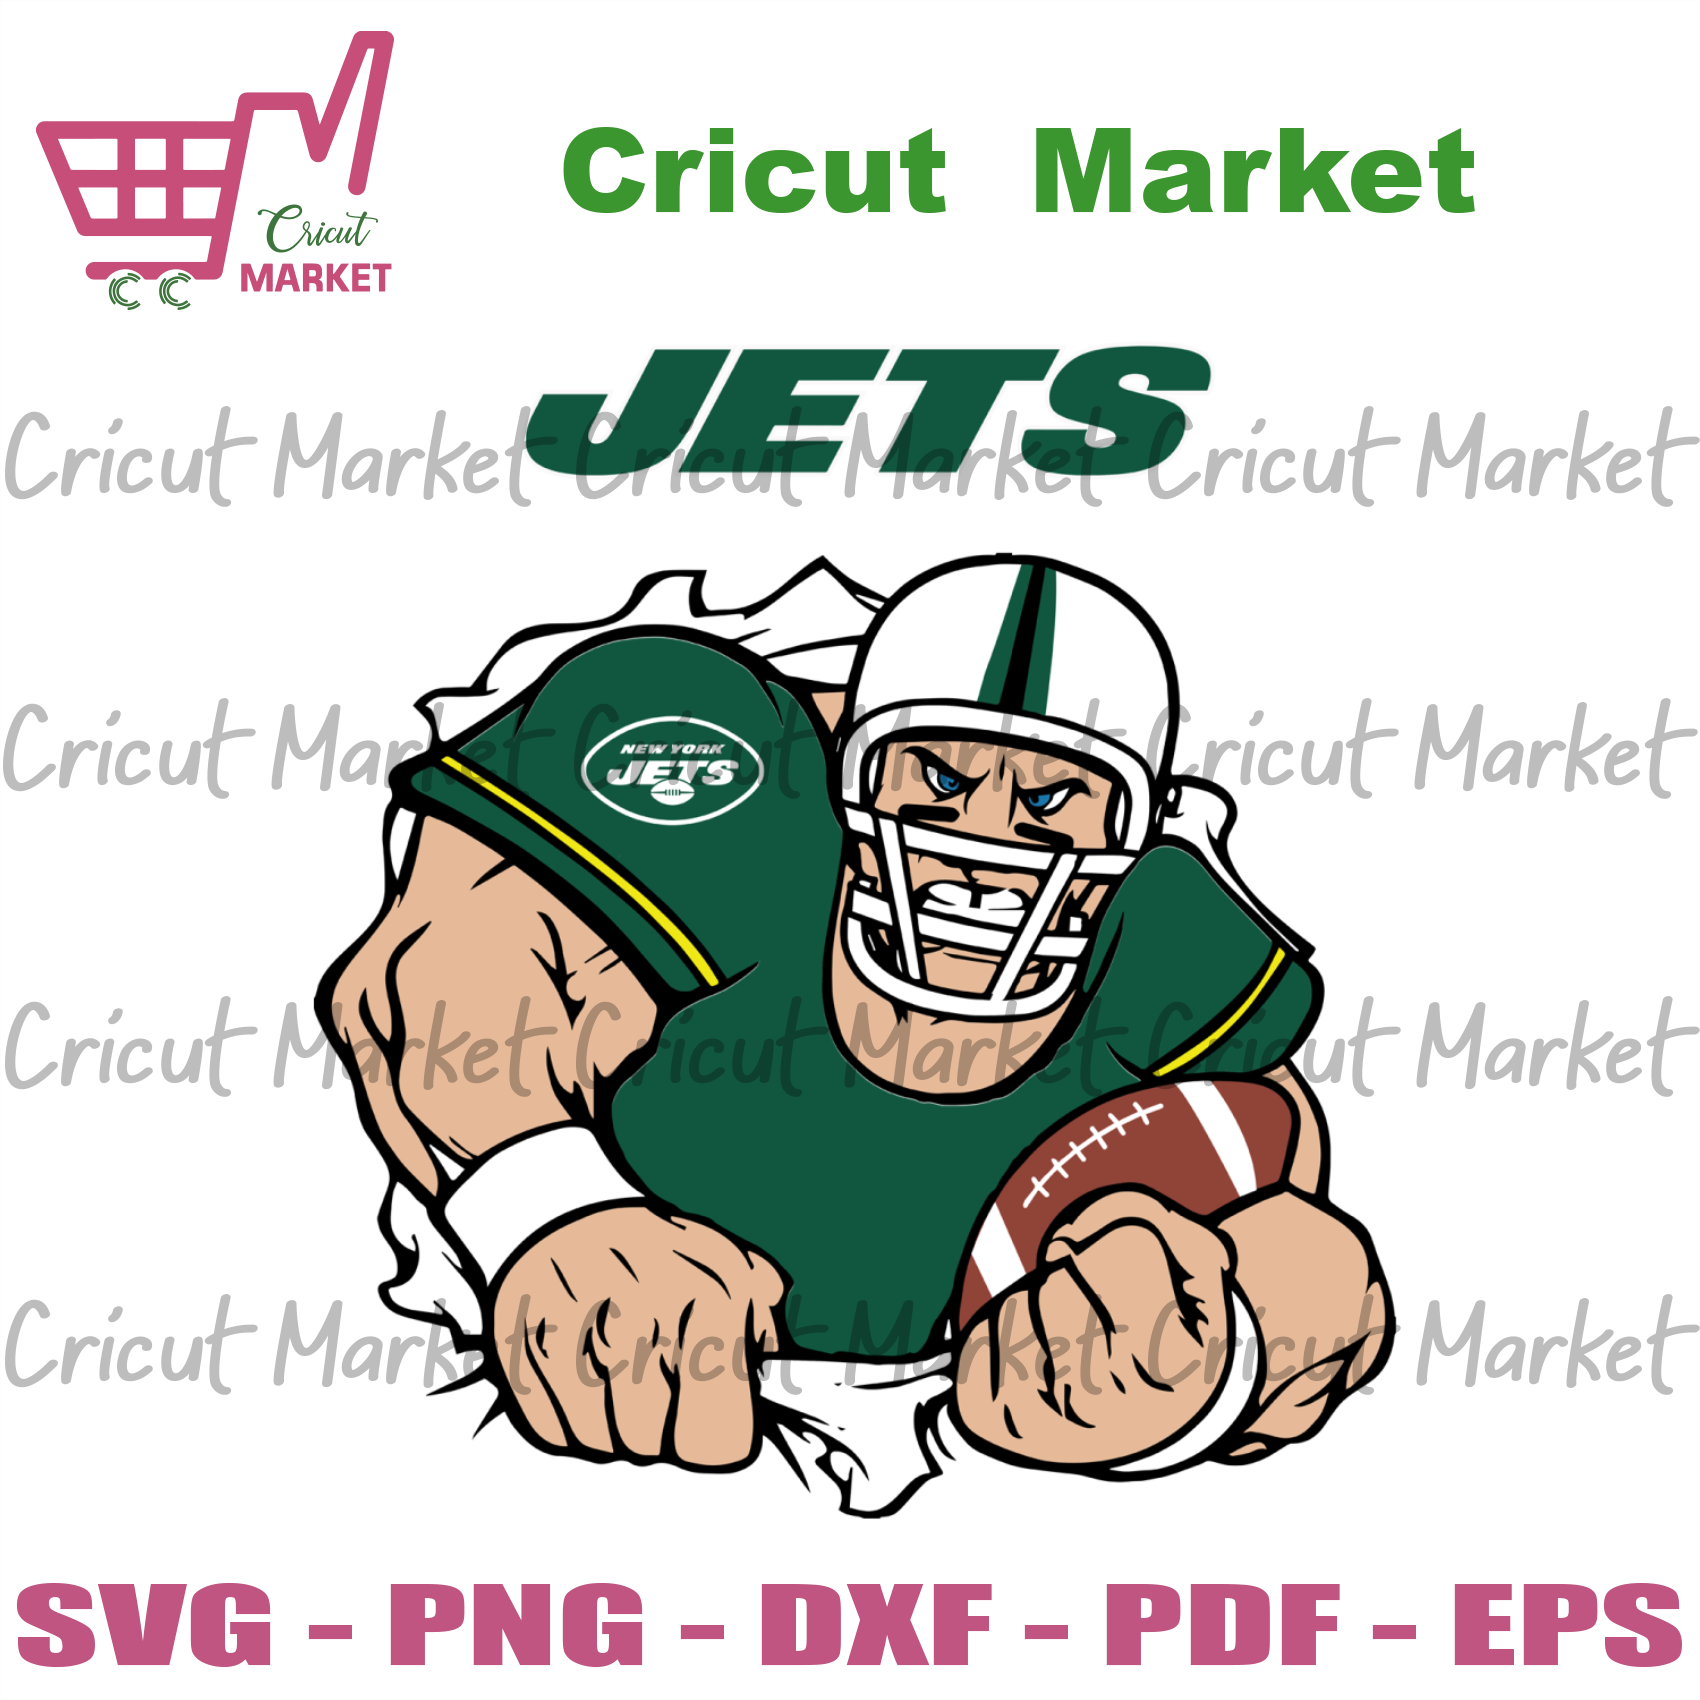 New York Jets Player, Nfl Svg, New York Jets Svg, New York Jets Football, Jets Shirt, Football Logo, Sport Svg, Nfl Fabric, Nfl Football, Football Mom Gift, Nfl Championship, Football Team, N